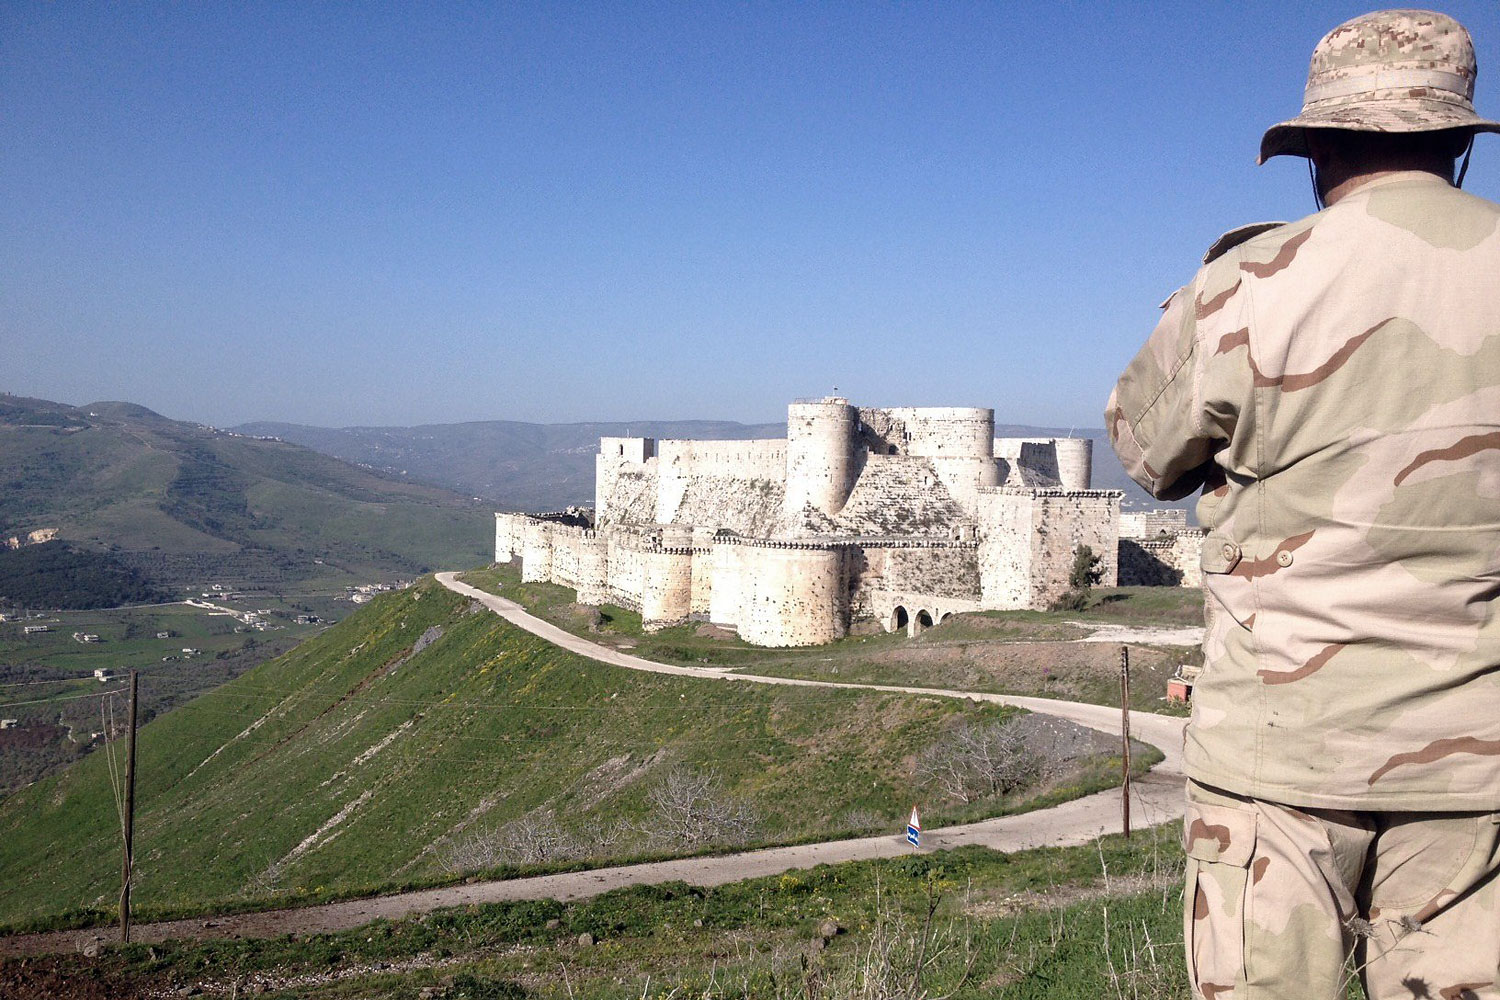 A government soldier looks out over the renowned Crusader castle Krak des Chevaliers near the Syria-Lebanon border after forces loyal to Syria's President Bashar al-Assad seized the fortress on March 20, 2014.